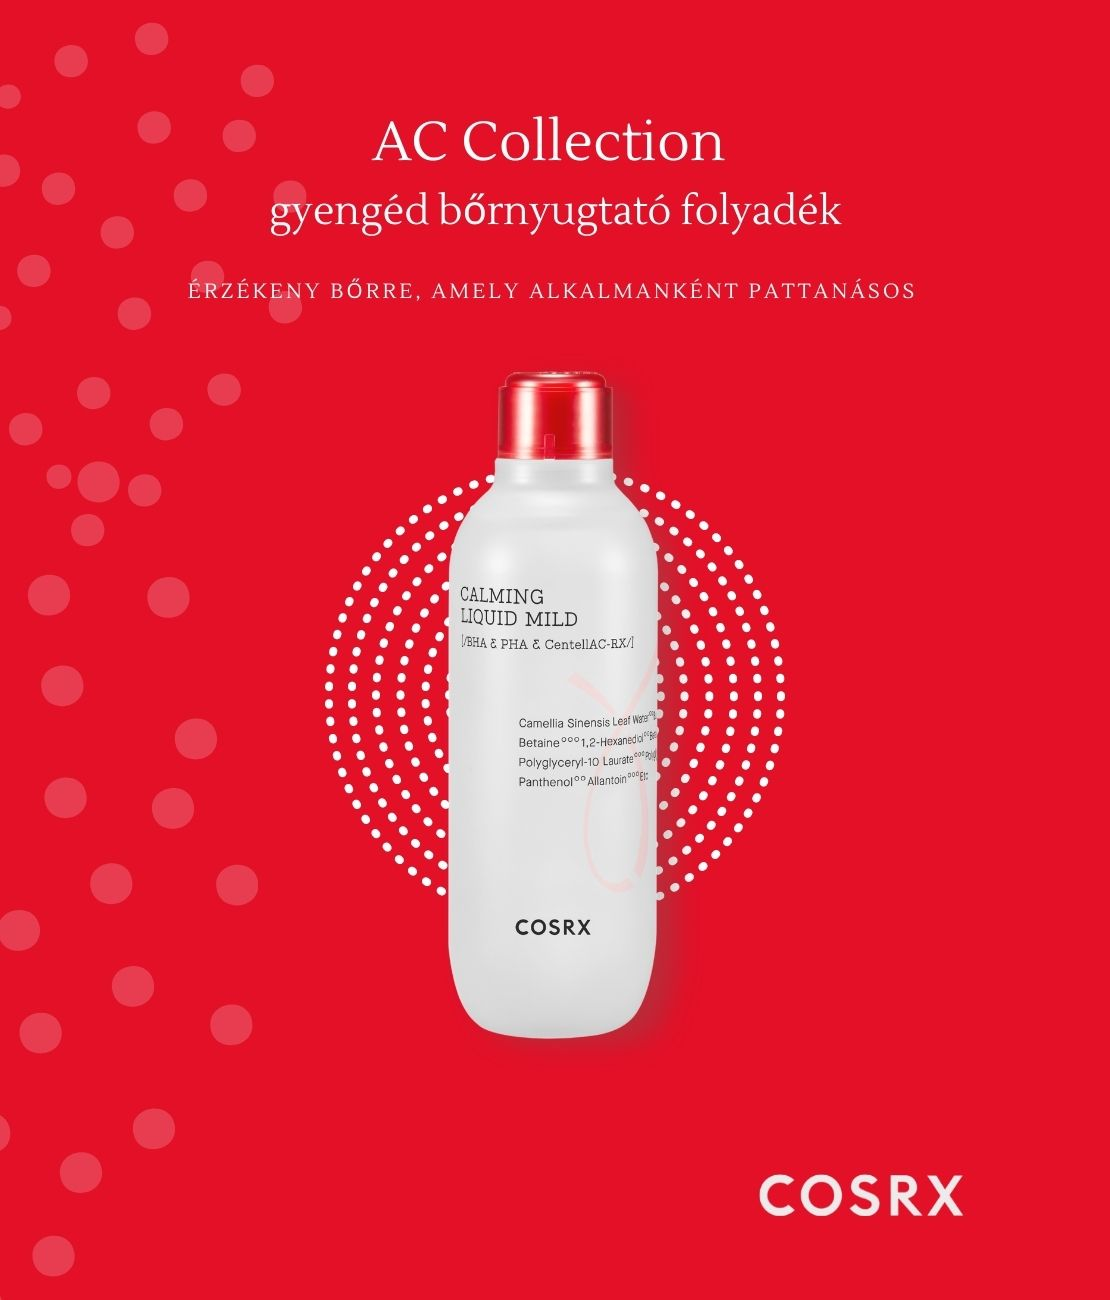 COSRX-AC-Collection-gyenged-bornyugtato-folyadek-leiras